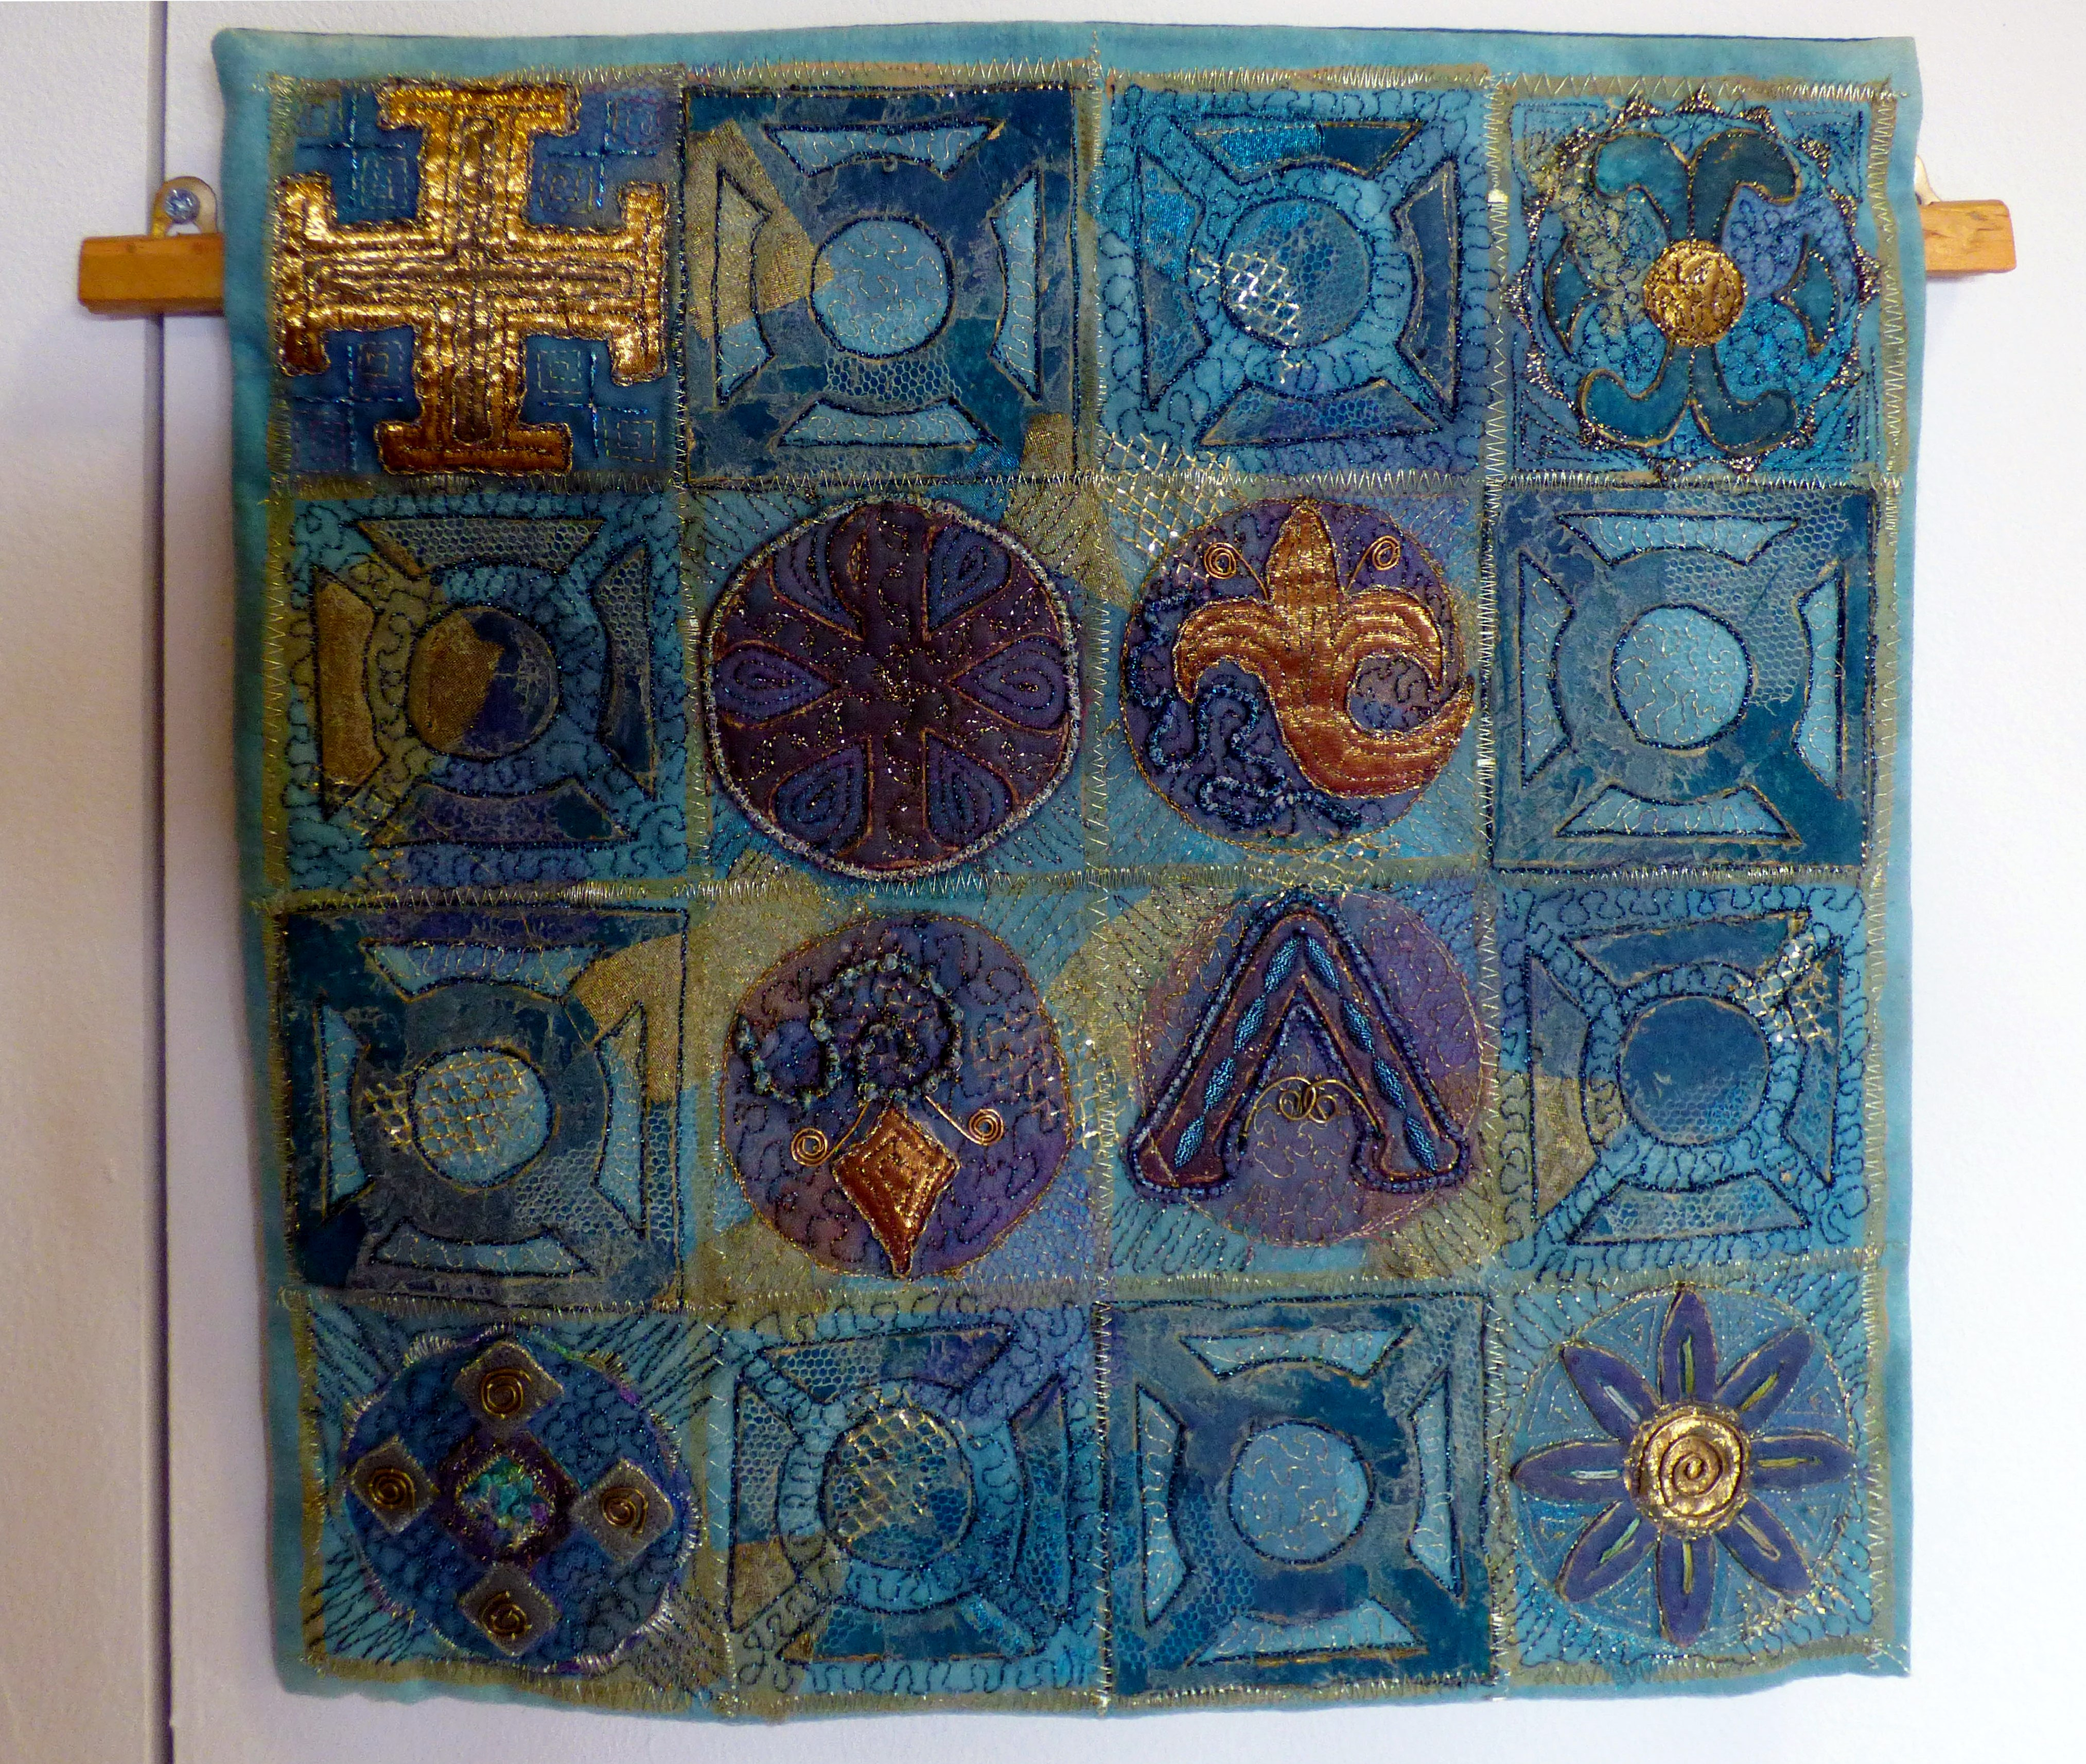 GETHSEMANE by Hilary Kimber, pieced & bonded fabrics with machine & hand stitching. Design based on the gates of the Church of All Nations, Jerusalem